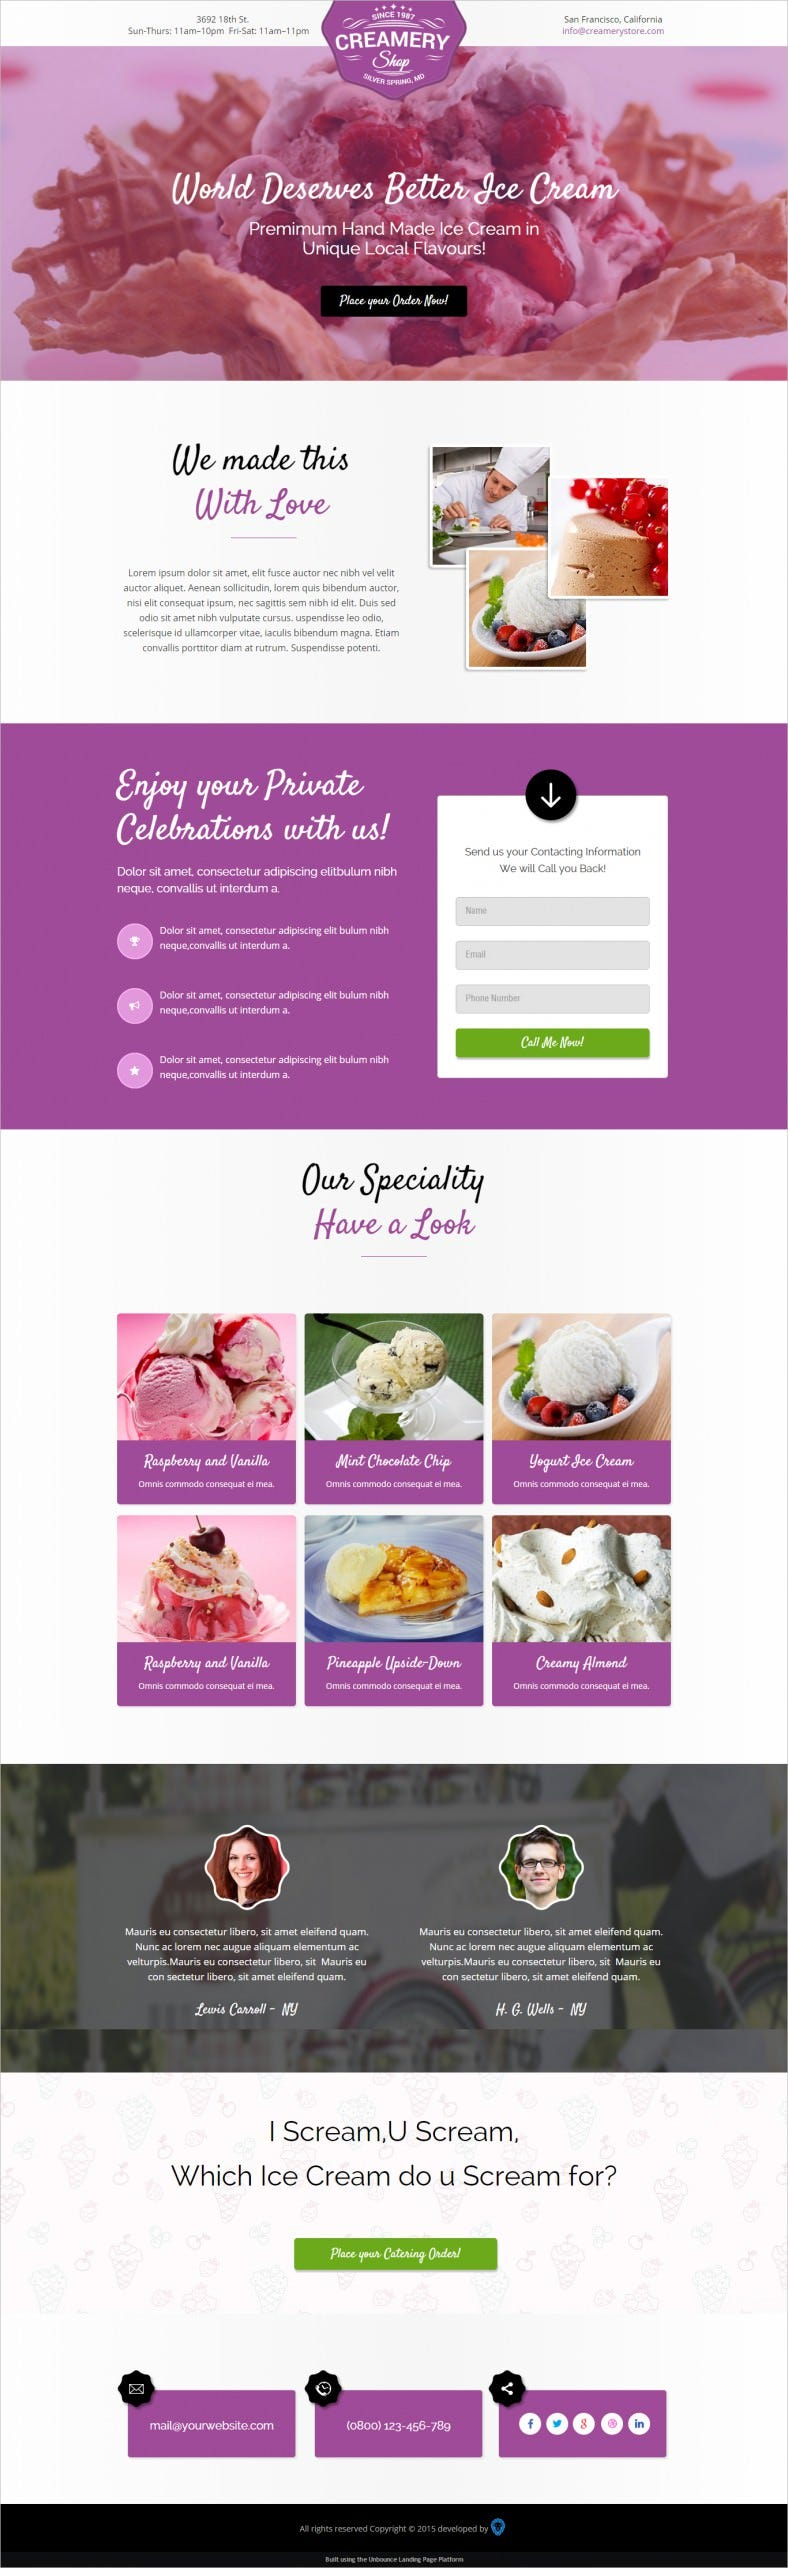 Creamery & Sweets Shops Landing Page Template